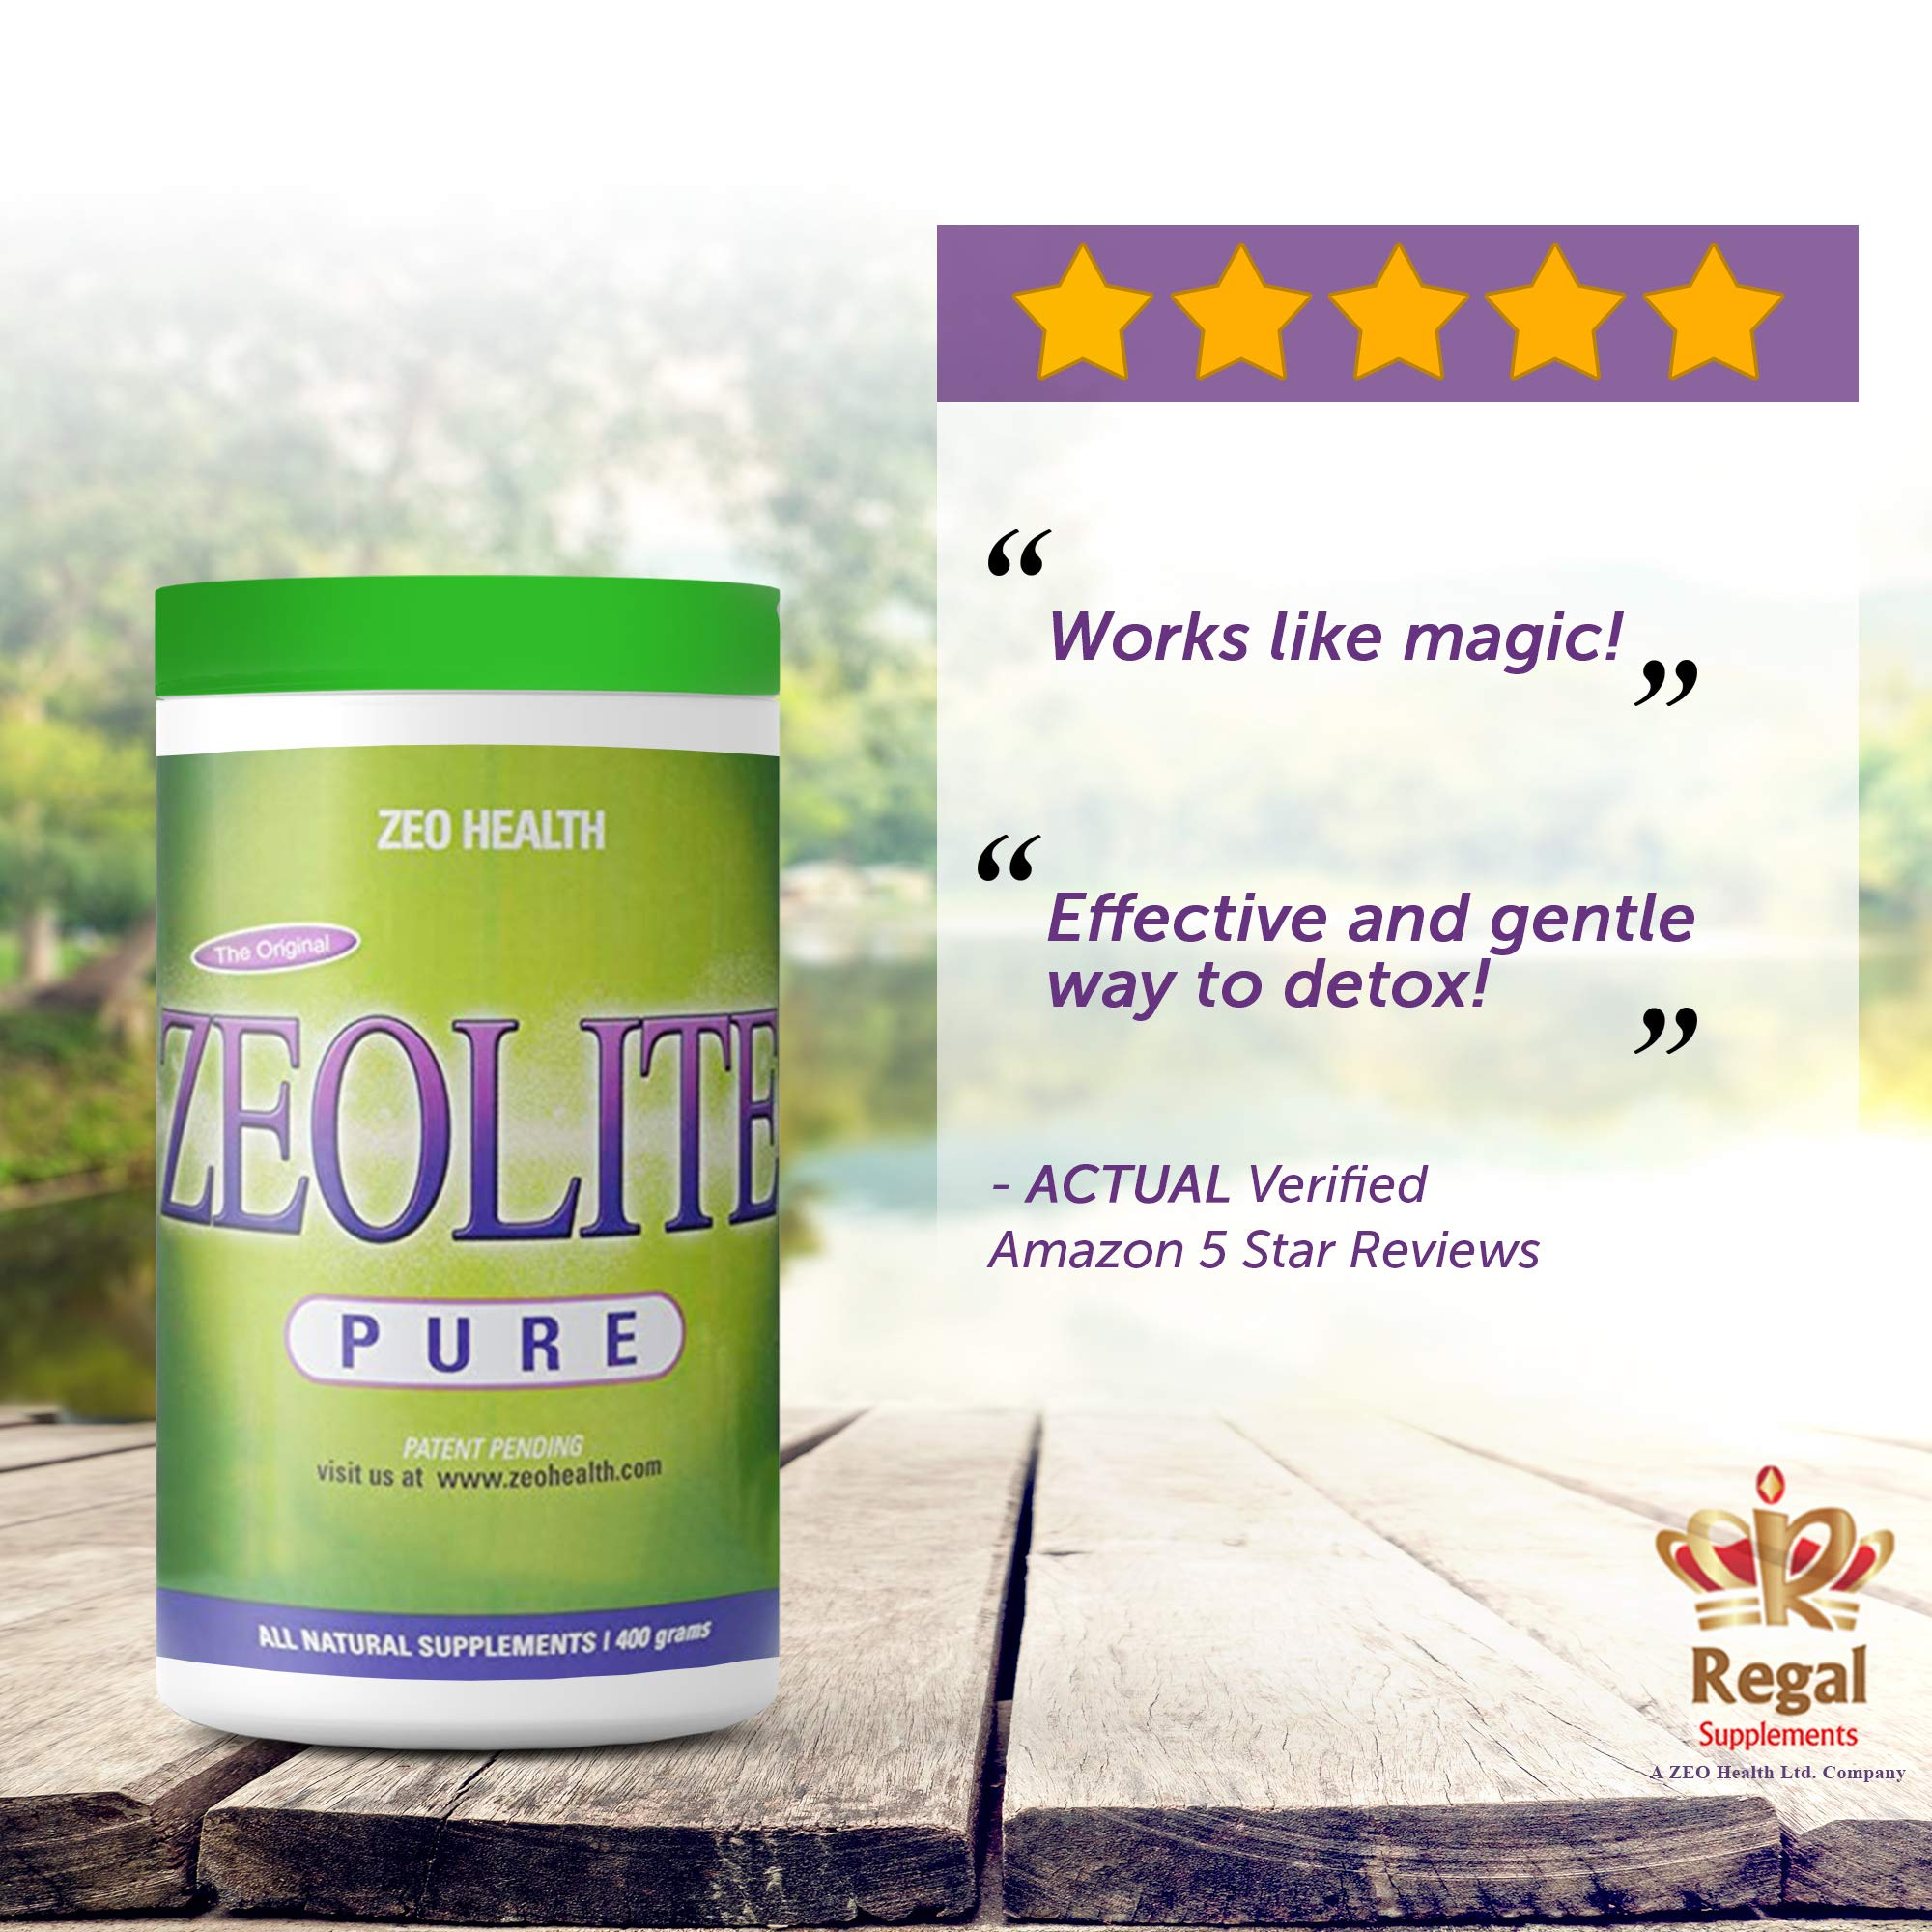 ZEOLITE PURE | Full Body Detox Cleanse | Safe, Gentle, & Effective Energy Booster that Supports Gut Health, Mental Clarity, & Healthy Inflammation Response| Original Zeolite Powder (400 Servings) by ZEOLITE PURE (Image #2)